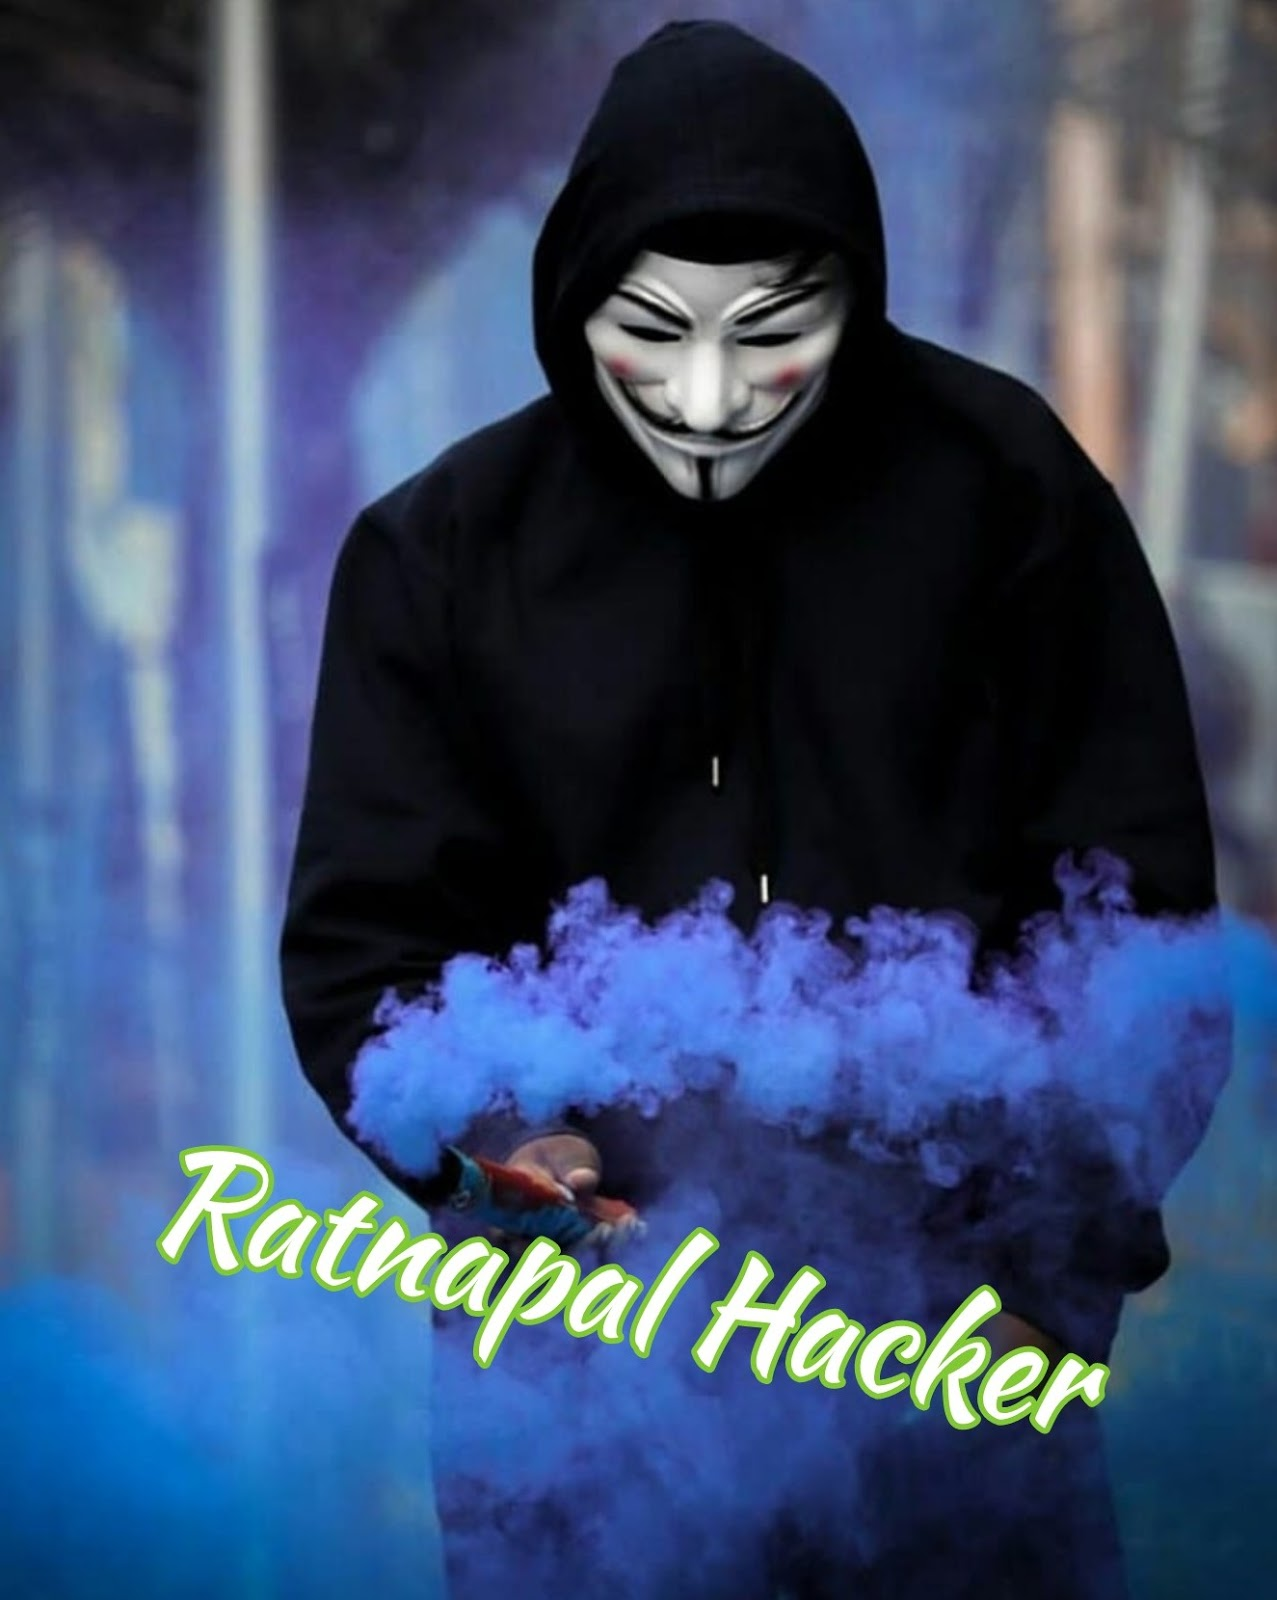 How to remotely hack Android phone [no root]